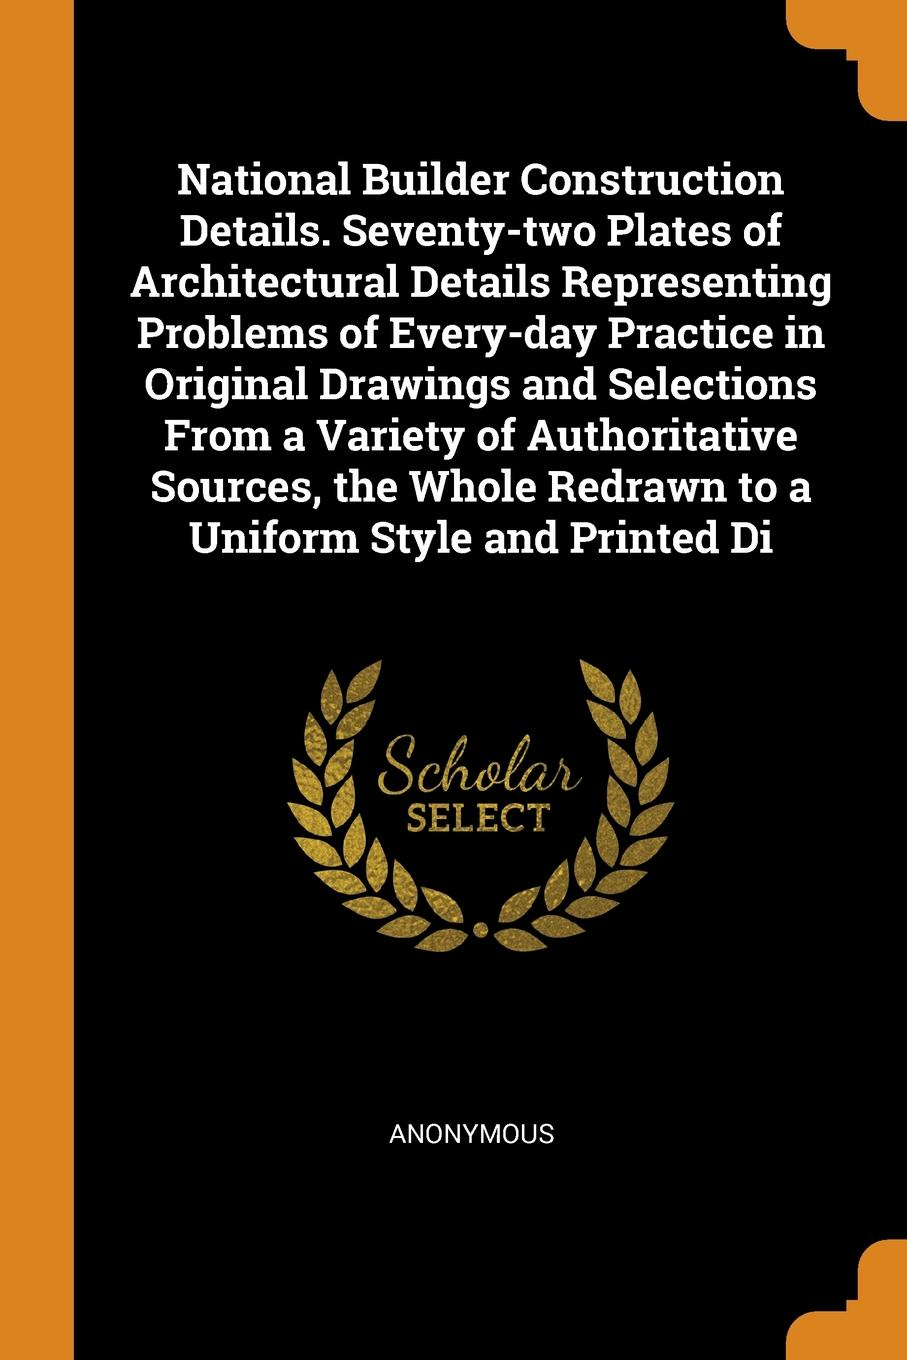 M. l'abbé Trochon National Builder Construction Details. Seventy-two Plates of Architectural Details Representing Problems of Every-day Practice in Original Drawings and Selections From a Variety of Authoritative Sources, the Whole Redrawn to a Uniform Style and Pr... fashion details 4000 drawings